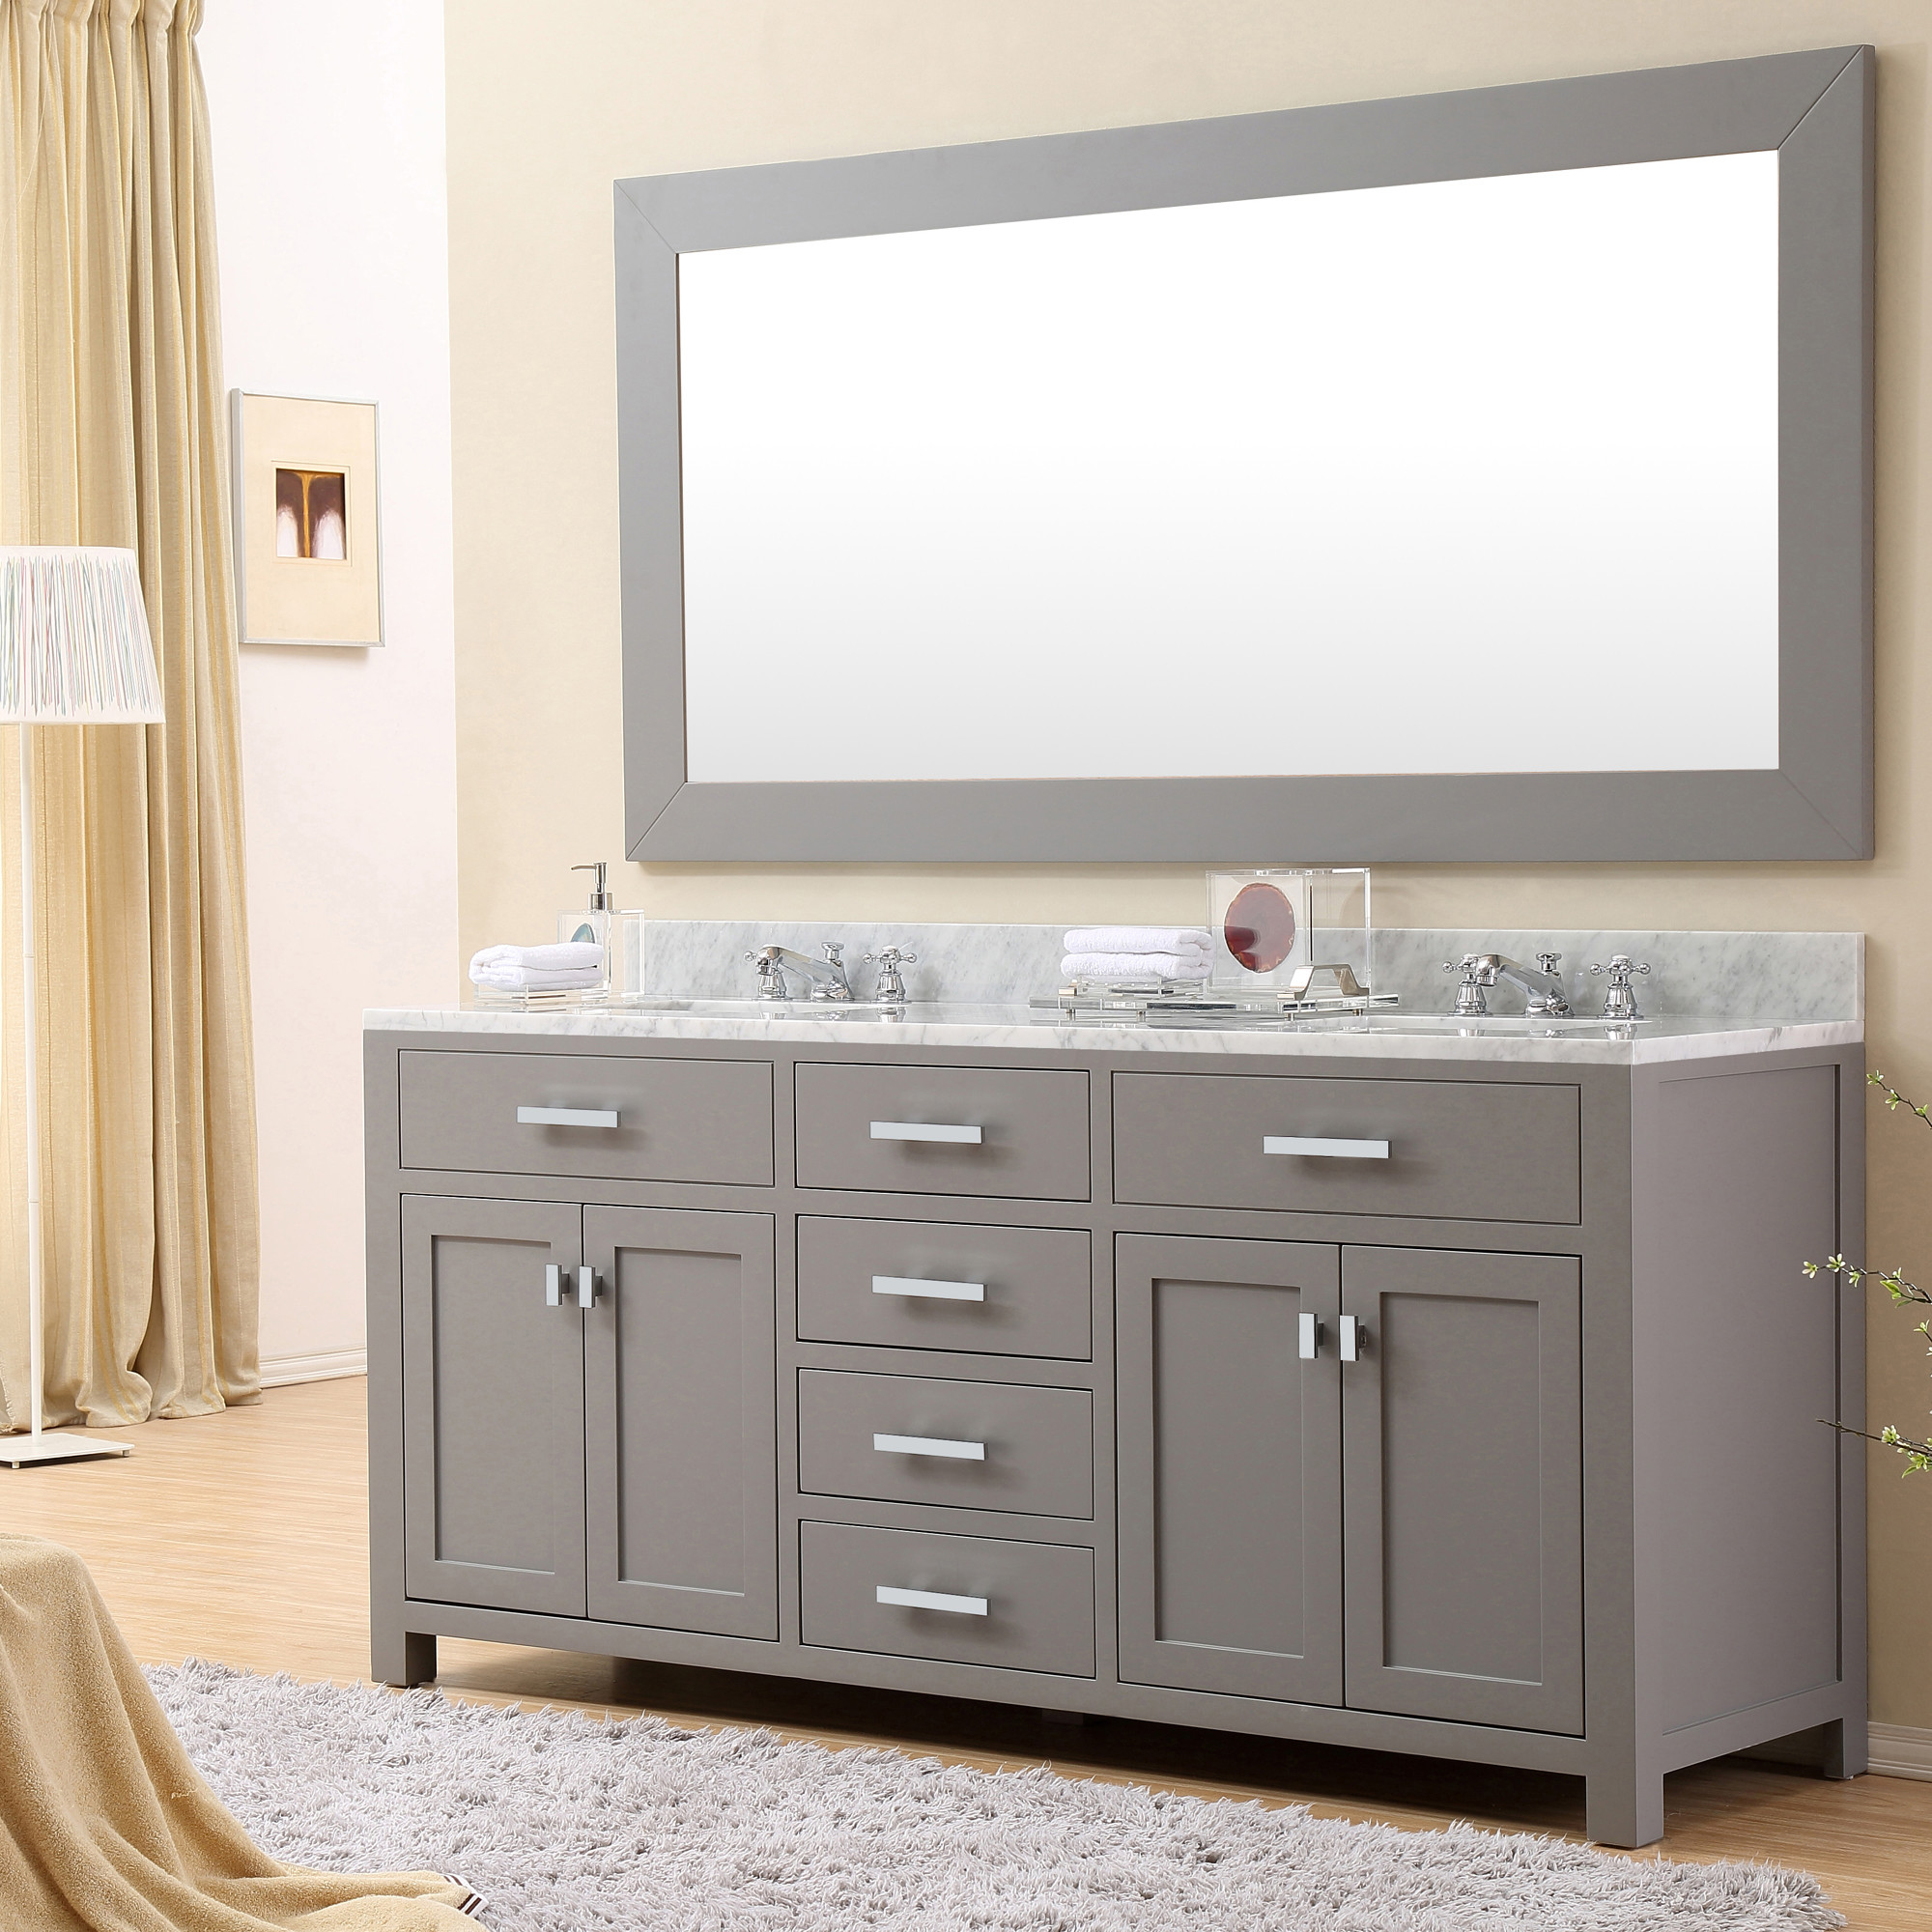 Daston 72 inch Gray Double Sink Bathroom Vanity, Carrara White ...